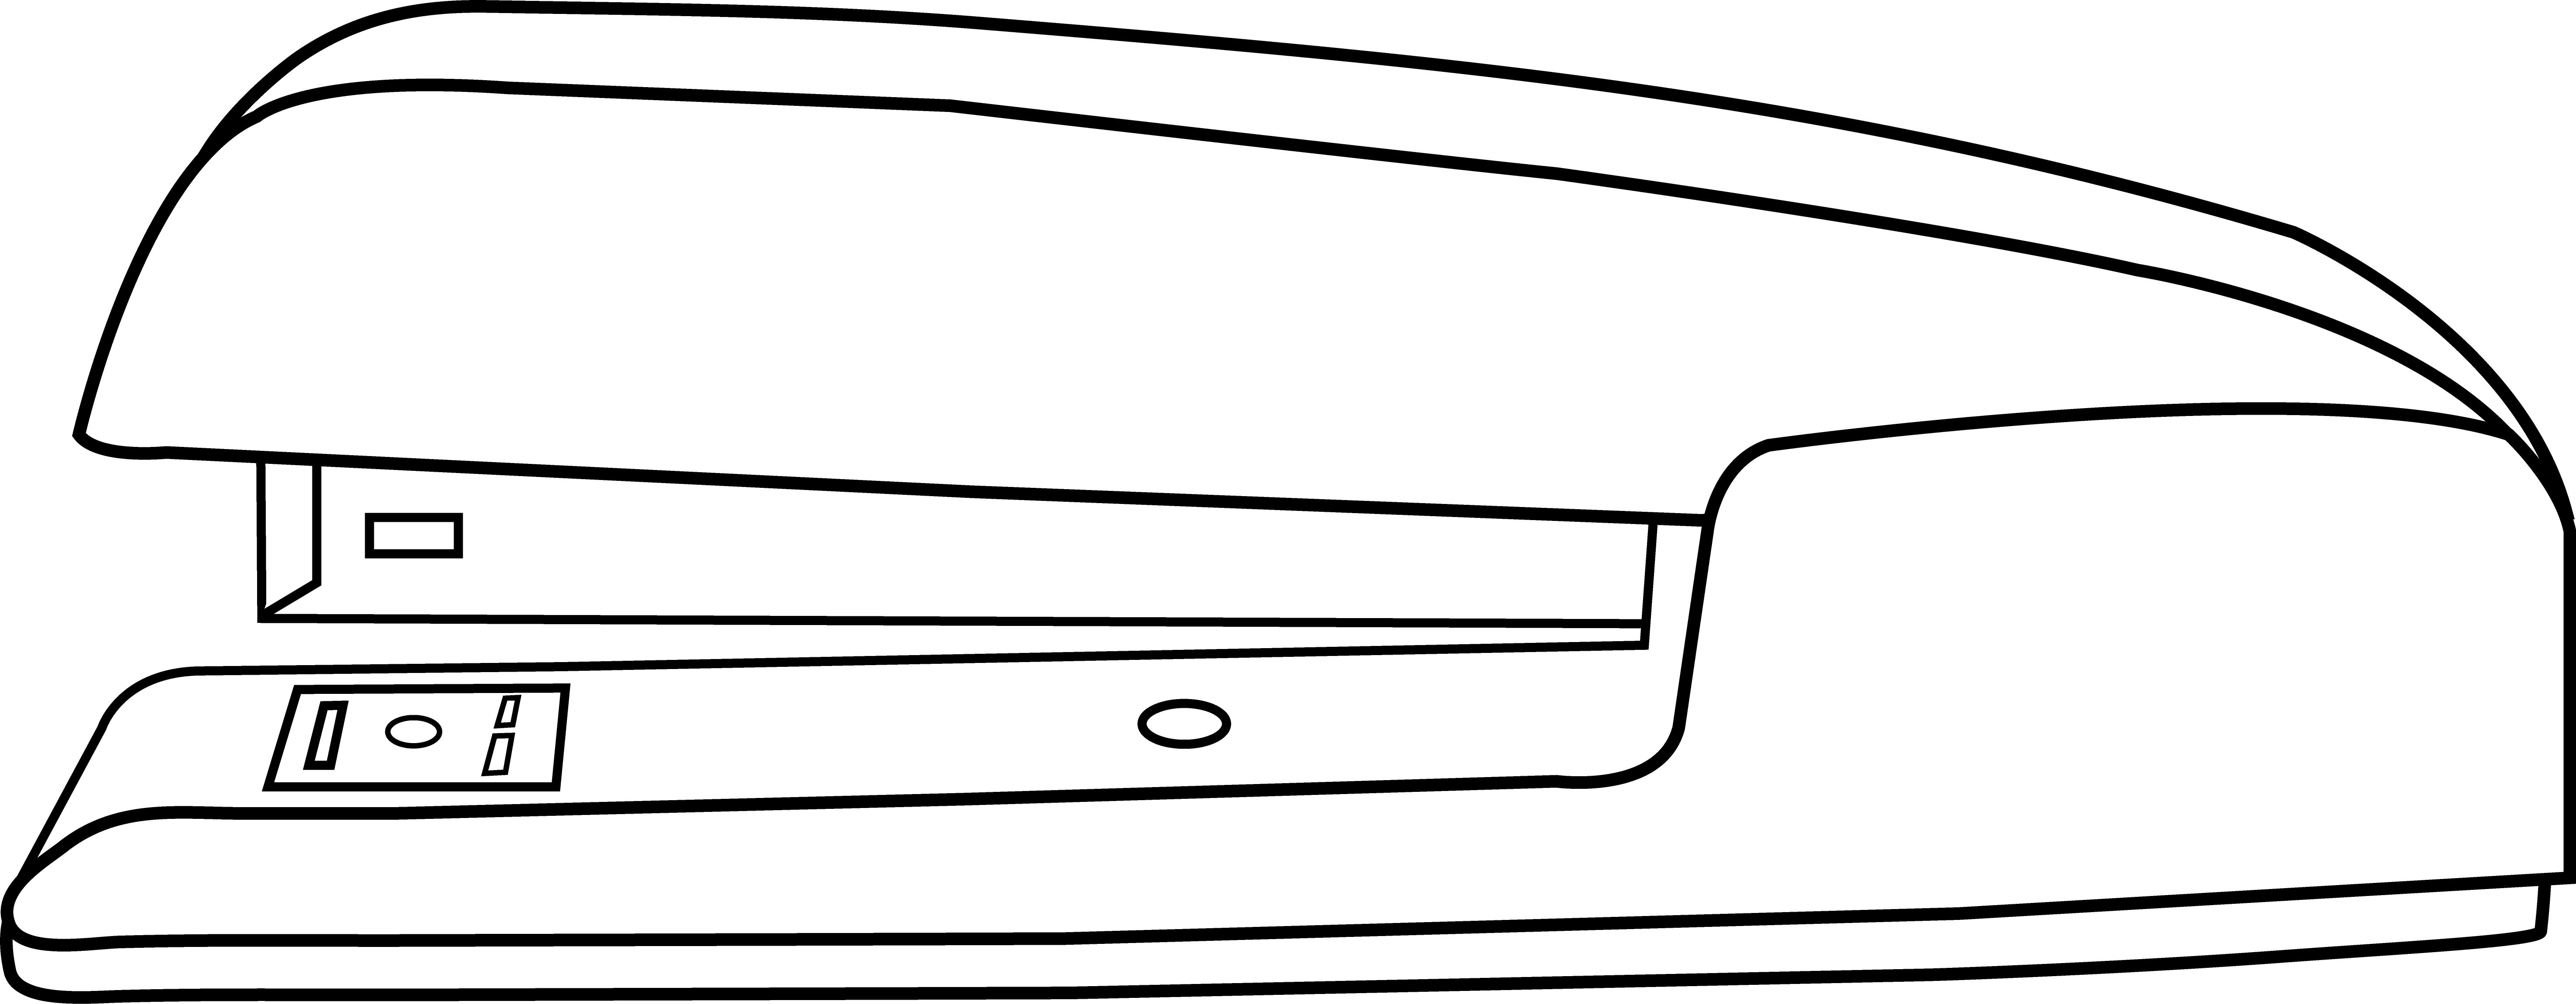 Scotch clipart stapler #5